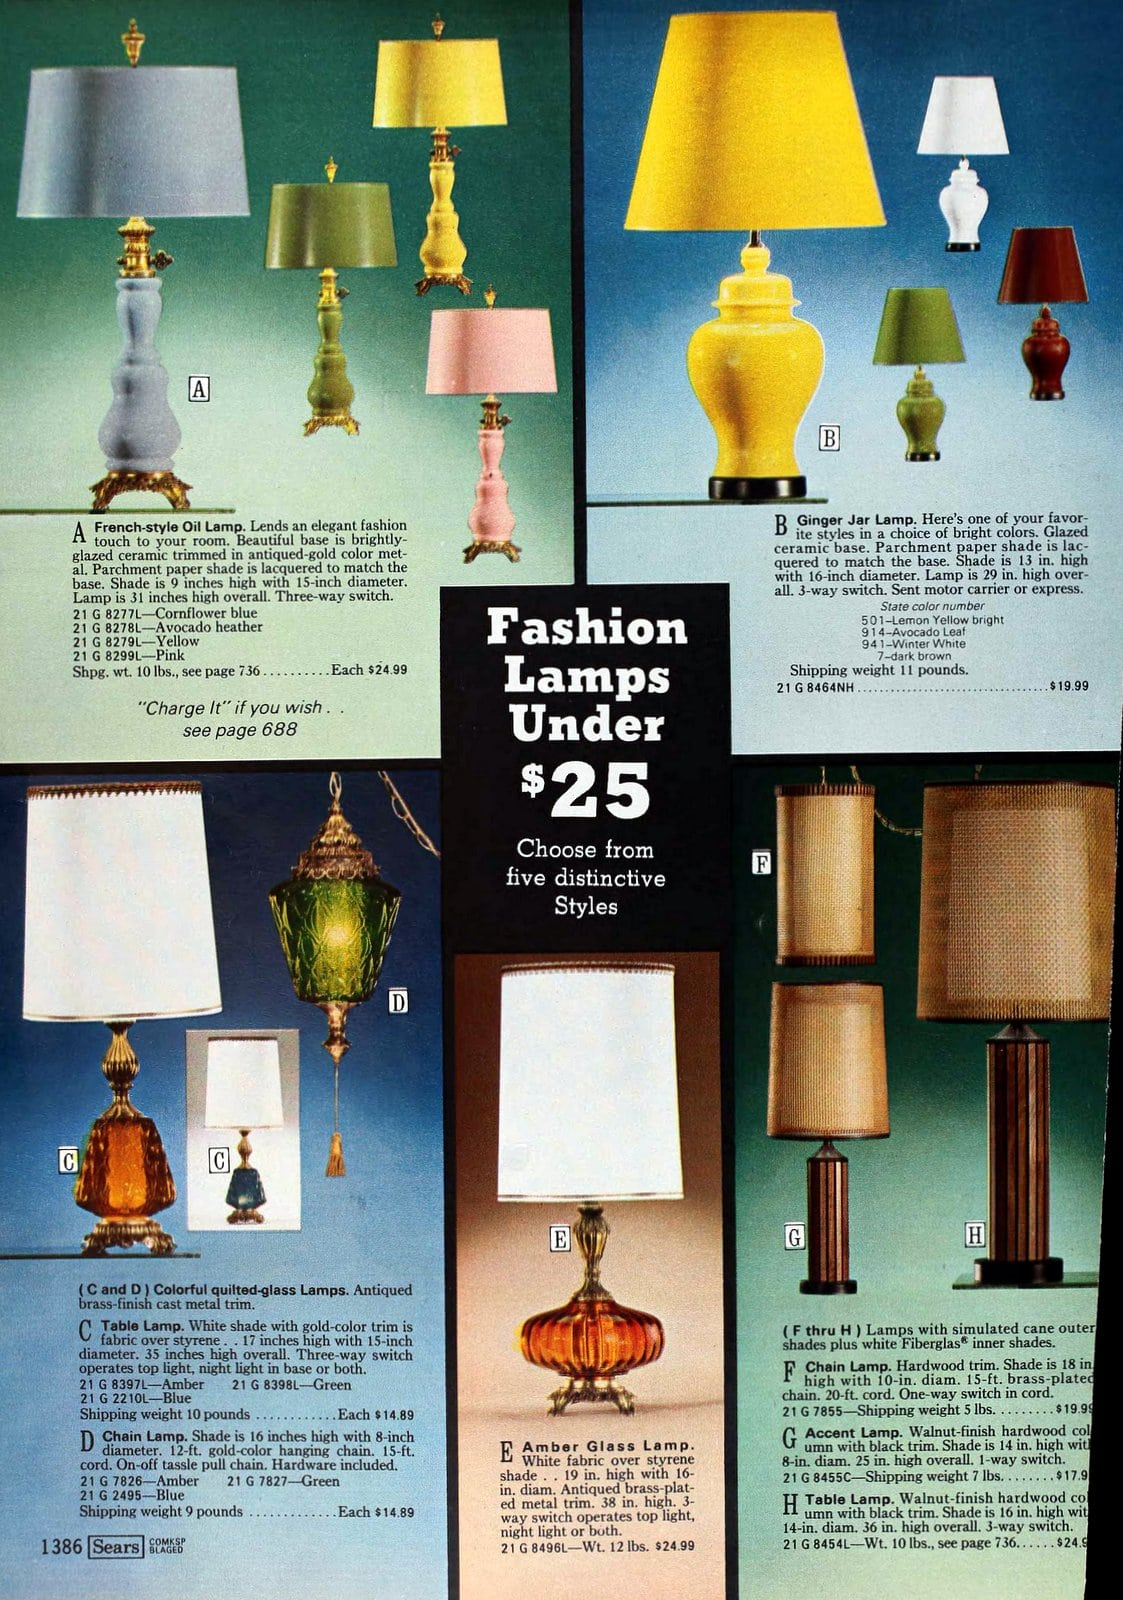 1970s fashion and decorator lamps (1973)